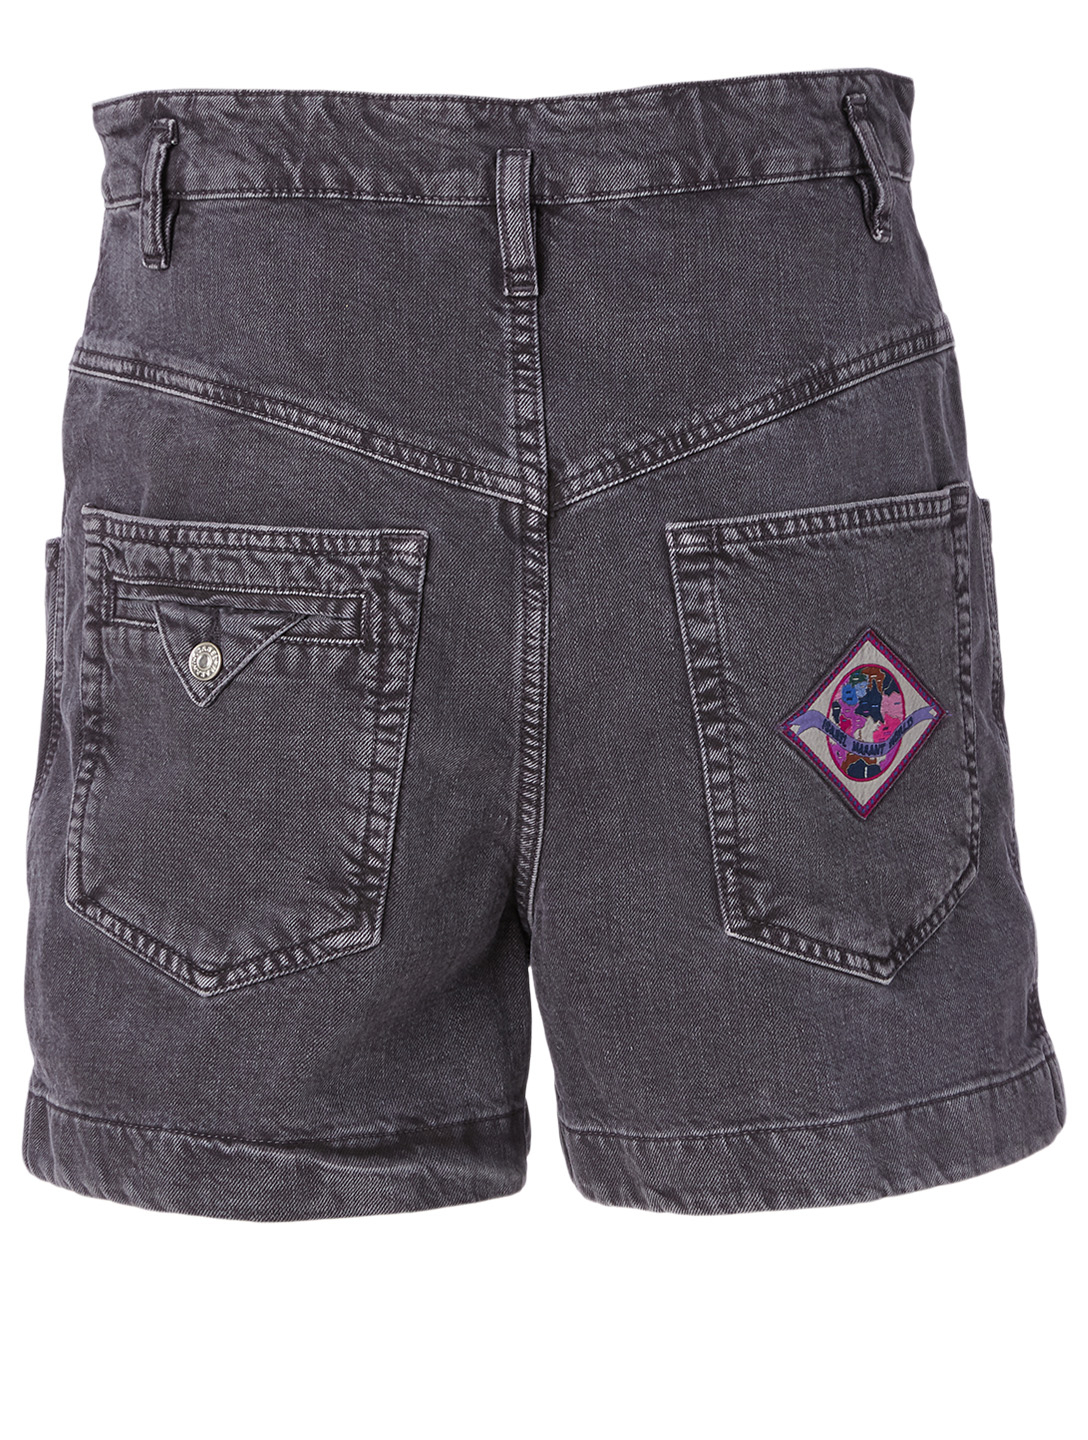 ISABEL MARANT Esquia Cotton Denim Shorts Women's Black